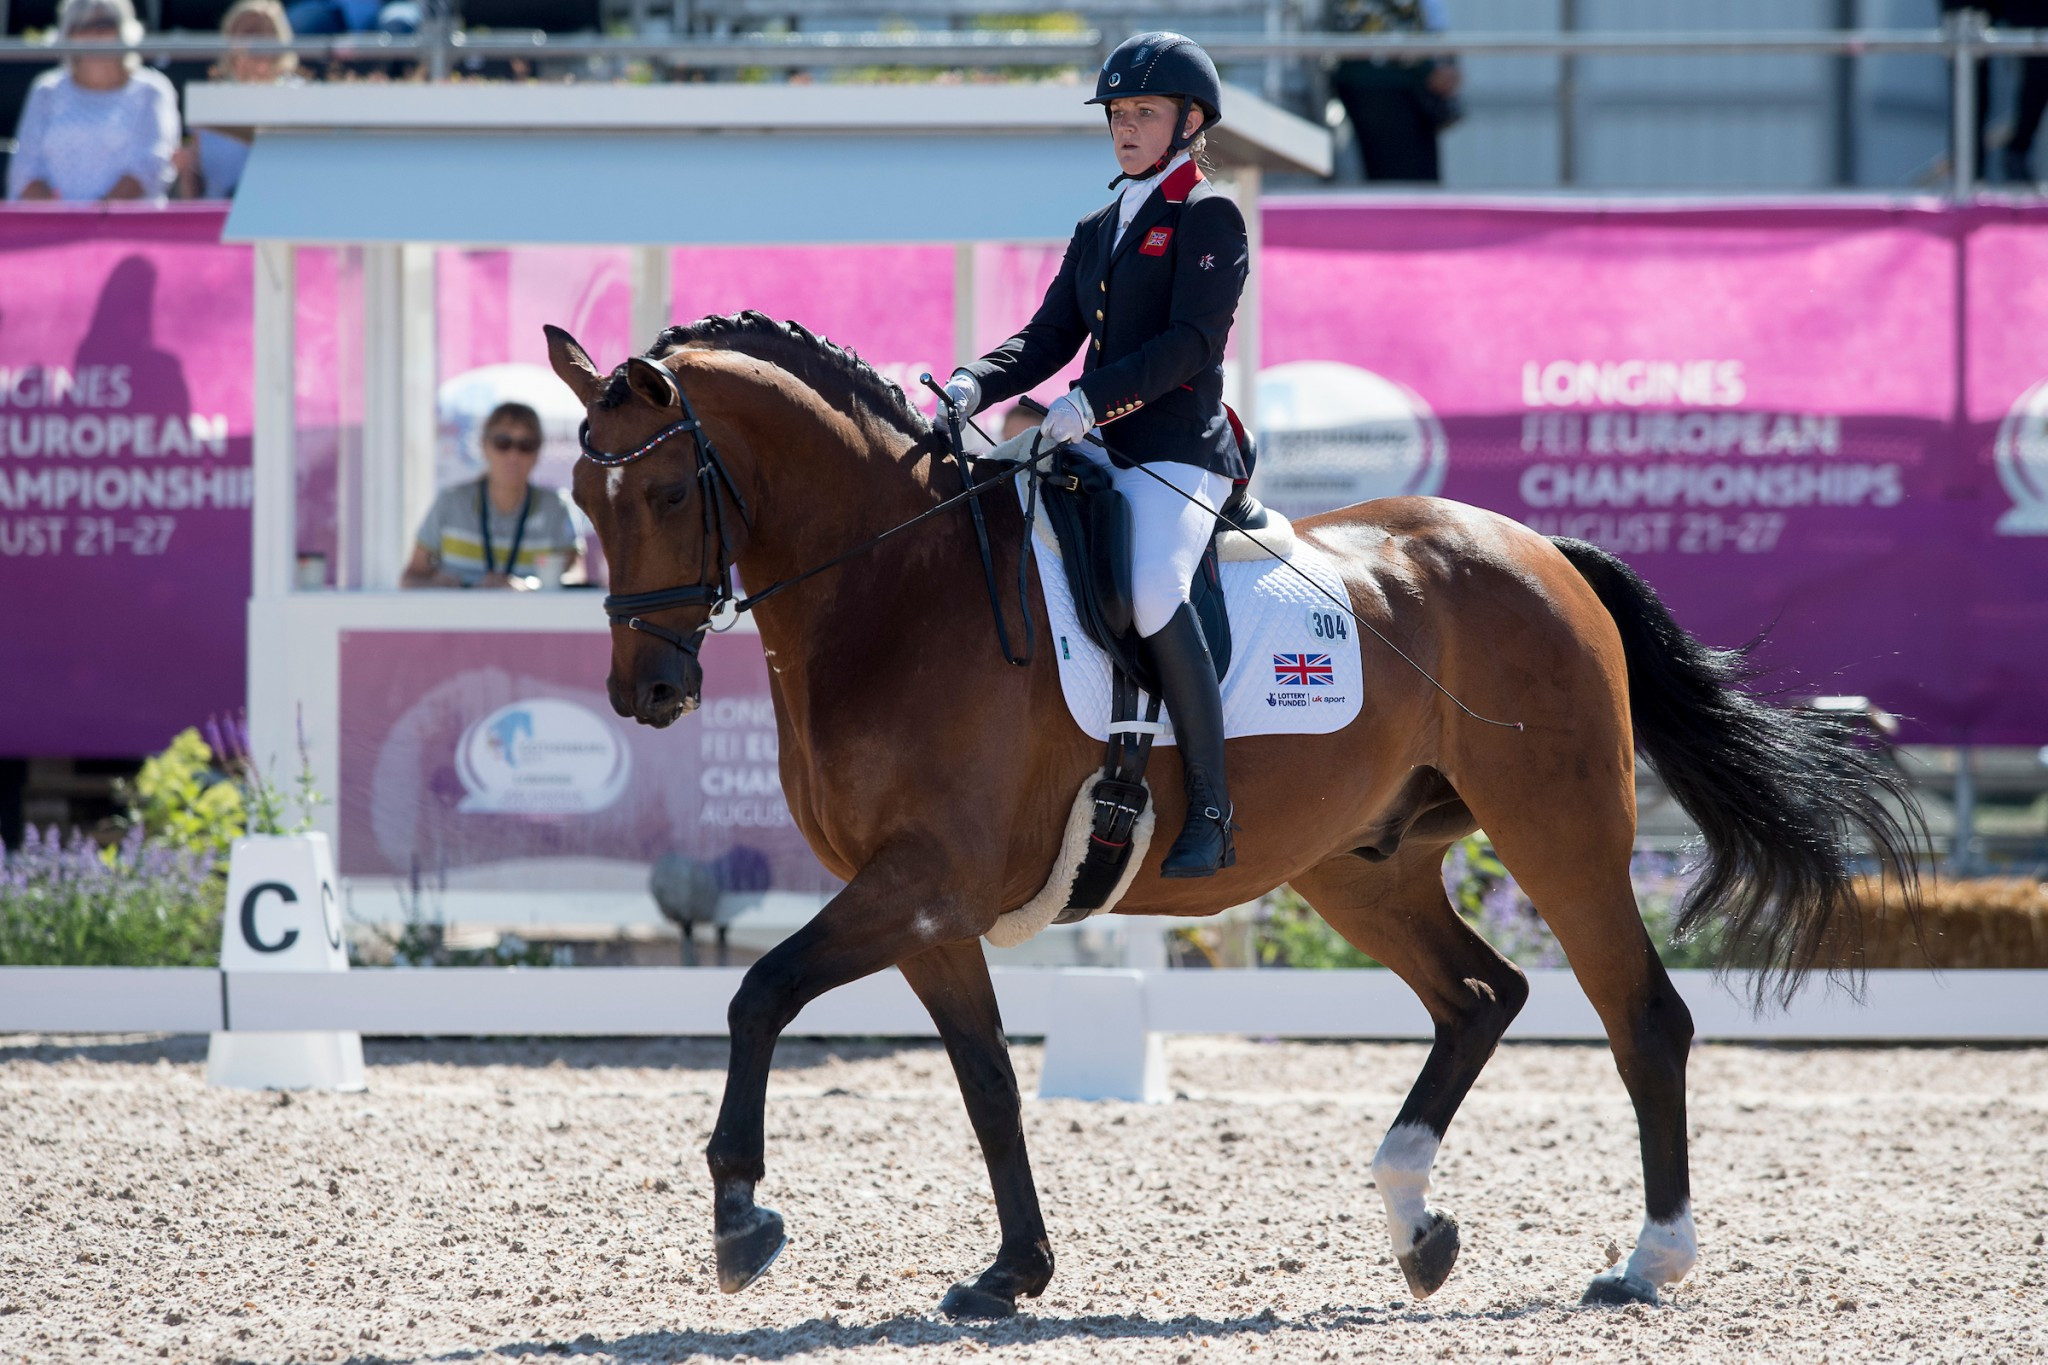 Suzanna Hext was one of the three riders appearing in their first European Championship for the British team ©British Equestrian Federation/Jon Stroud Media